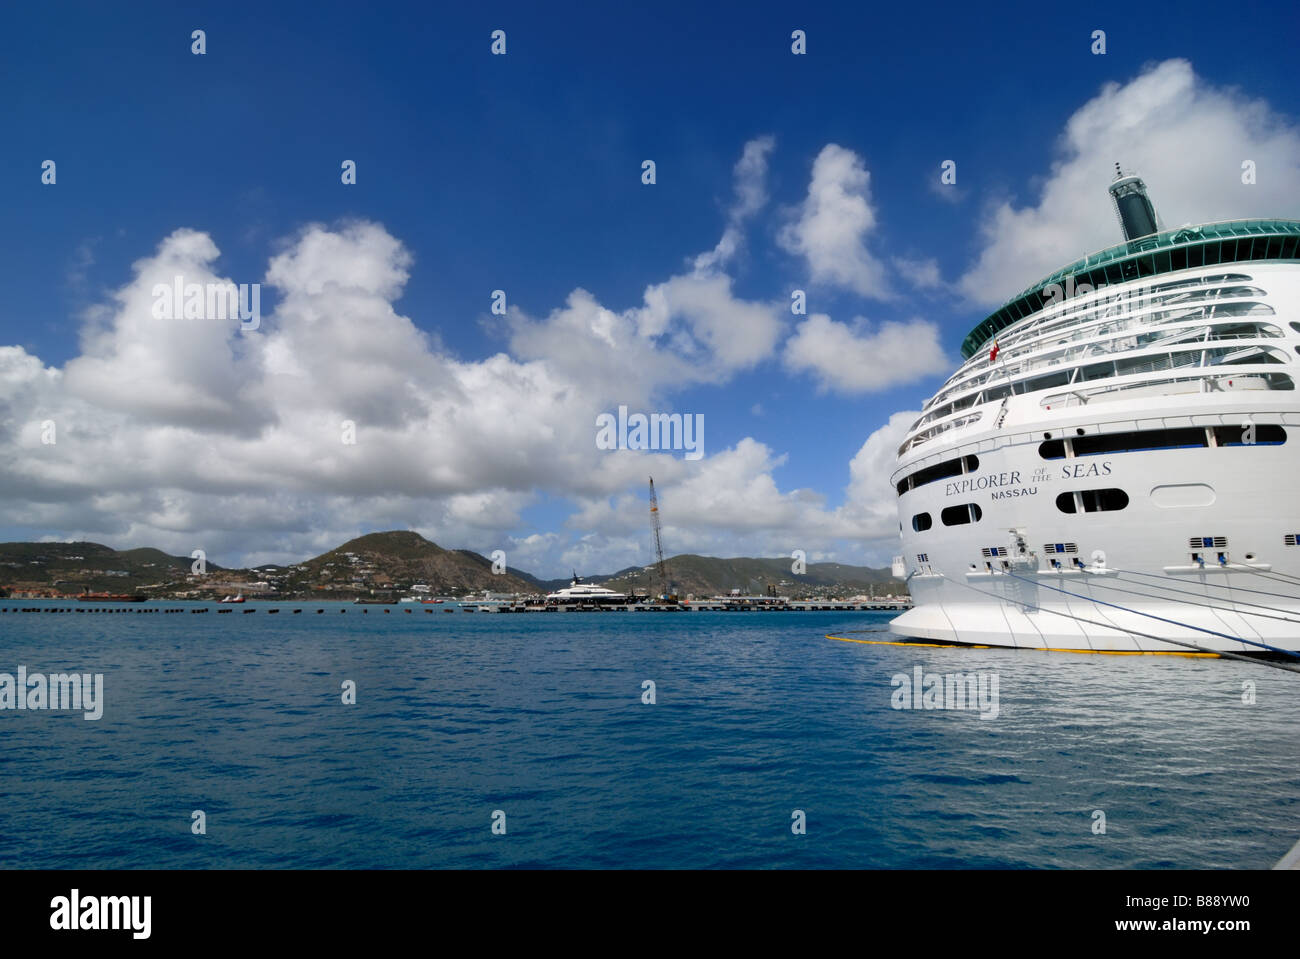 Royal Caribbean s Explorer of the Seas docked at St Maarten - Stock Image